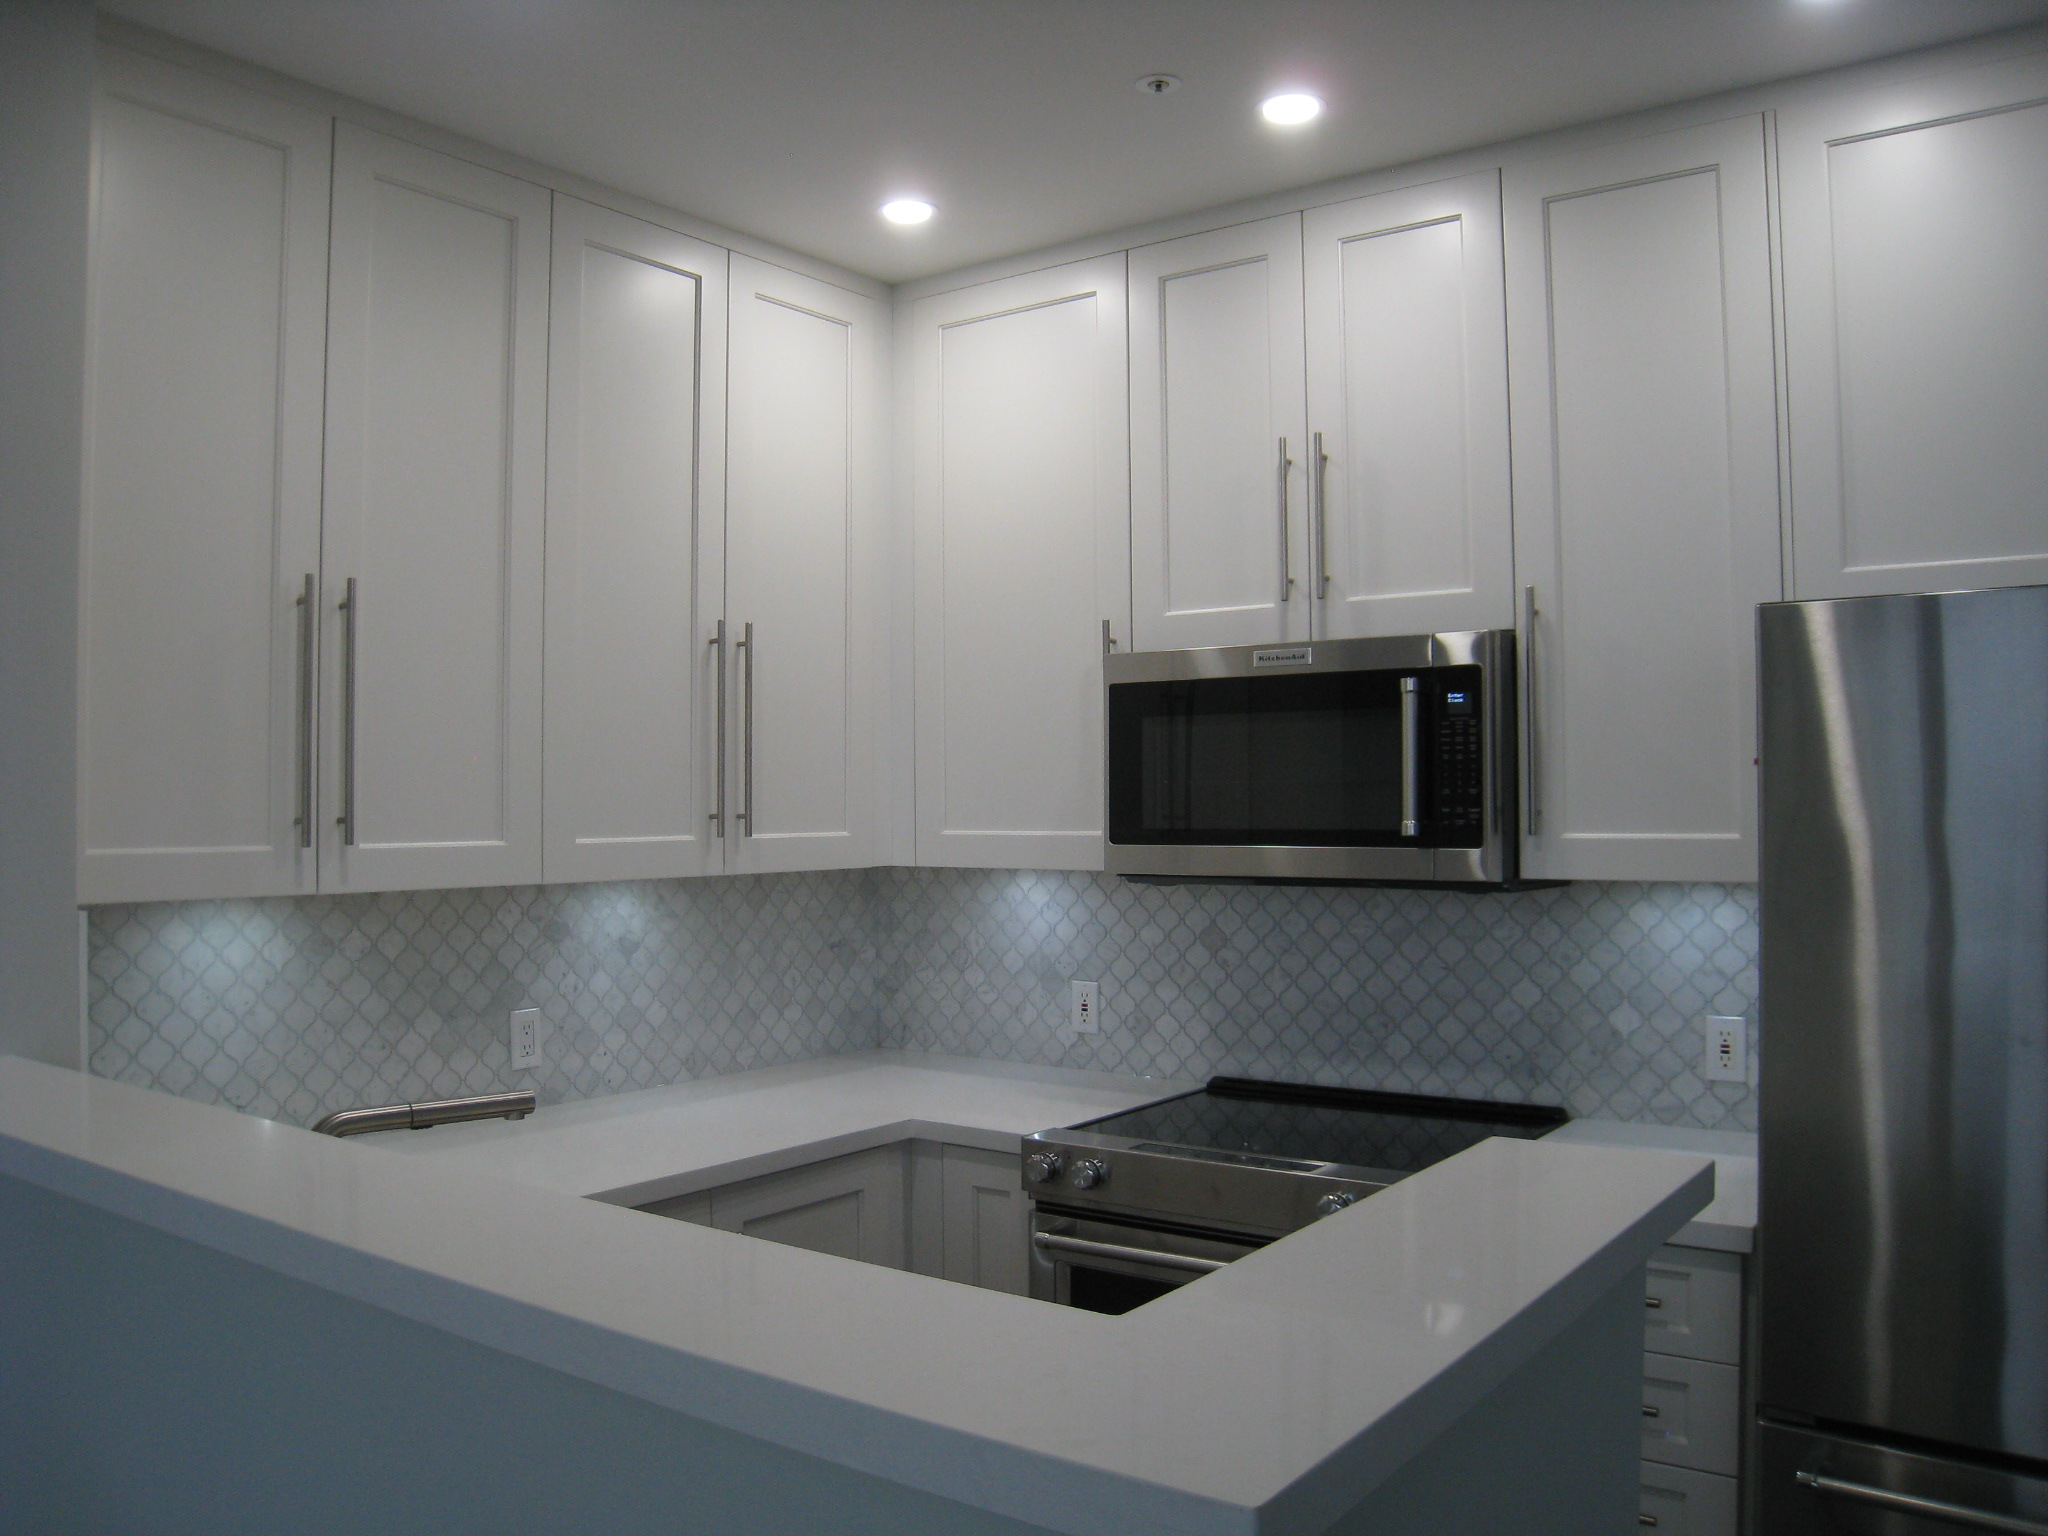 Kitchen with marble backsplash